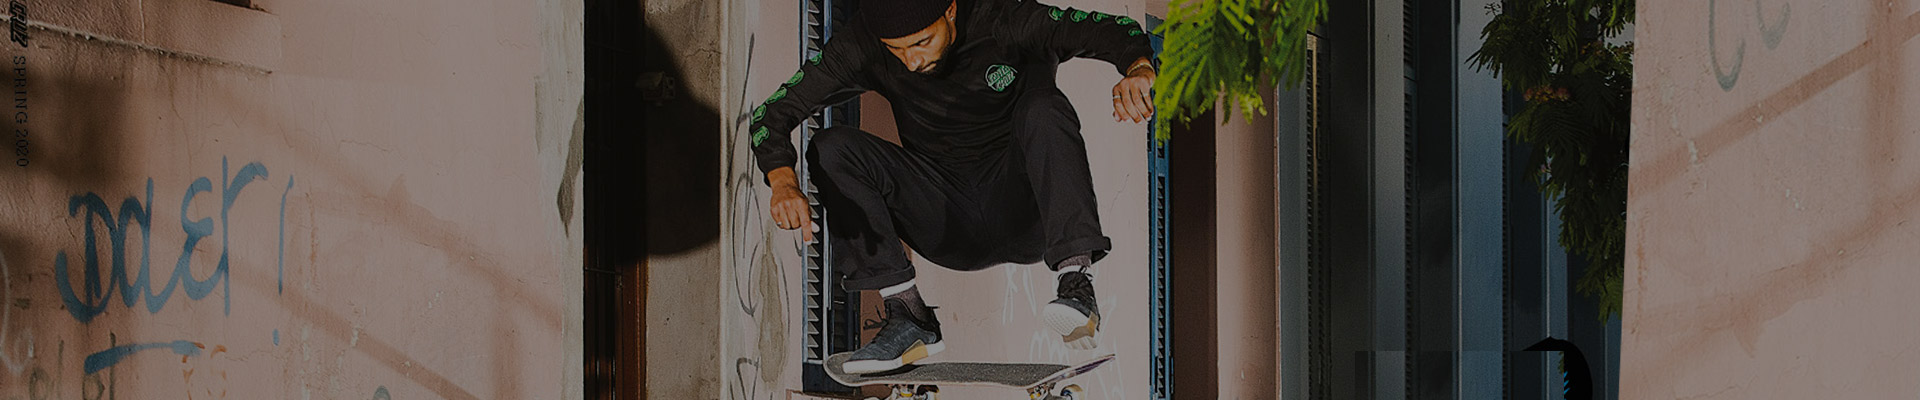 Long Sleeve Tops online   Buy Now on Xtreme-Skate.com